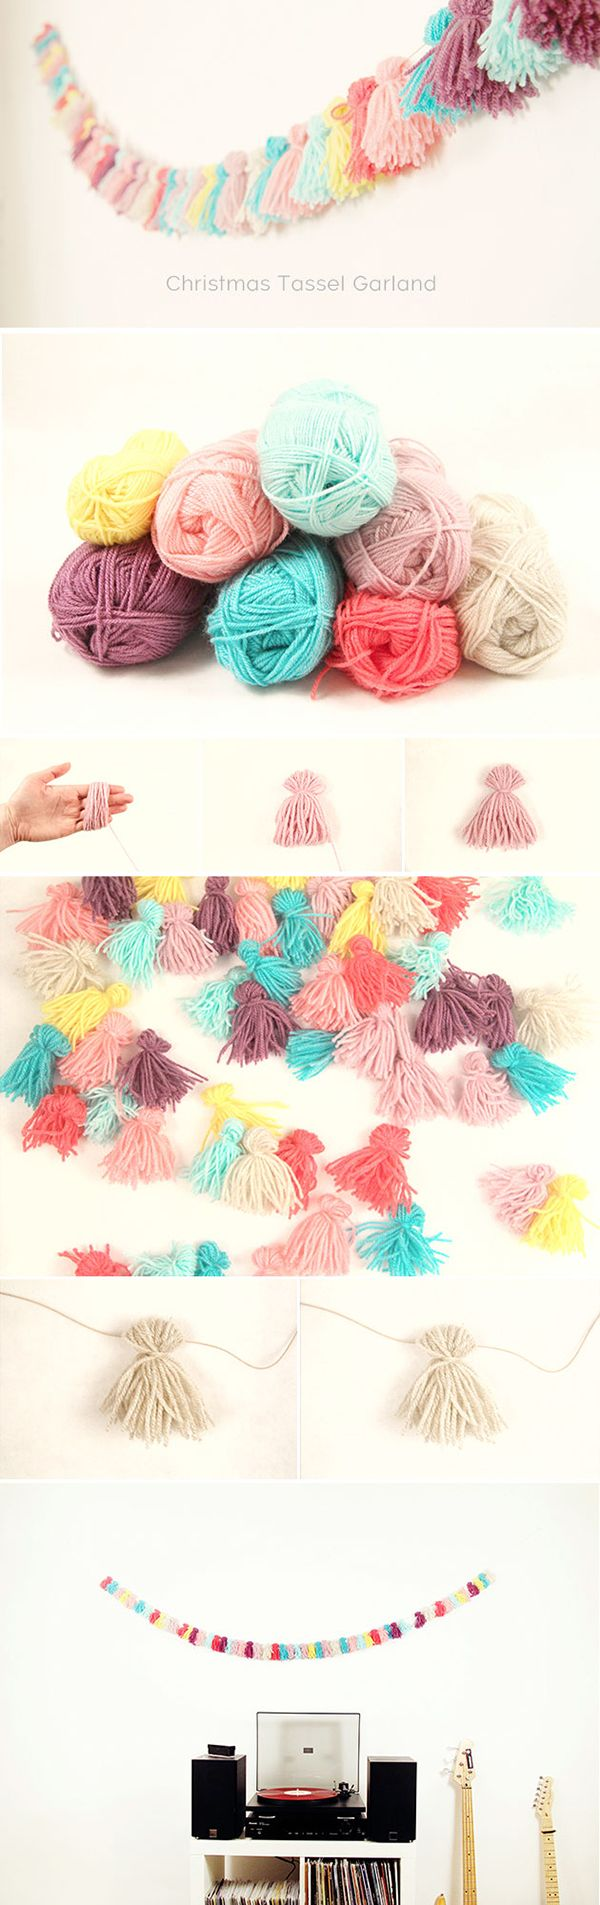 Pom-poms are one of those decorative things that you probably don't really think about it unless you see them on something you love. But honestly, maybe we should be seeking them out a little more. Pom-poms are cute to look at, and they also make anything they're on automatically look more fun and vibrant, making them the perfect accent to add to any old item that needs a bit of a makeover.